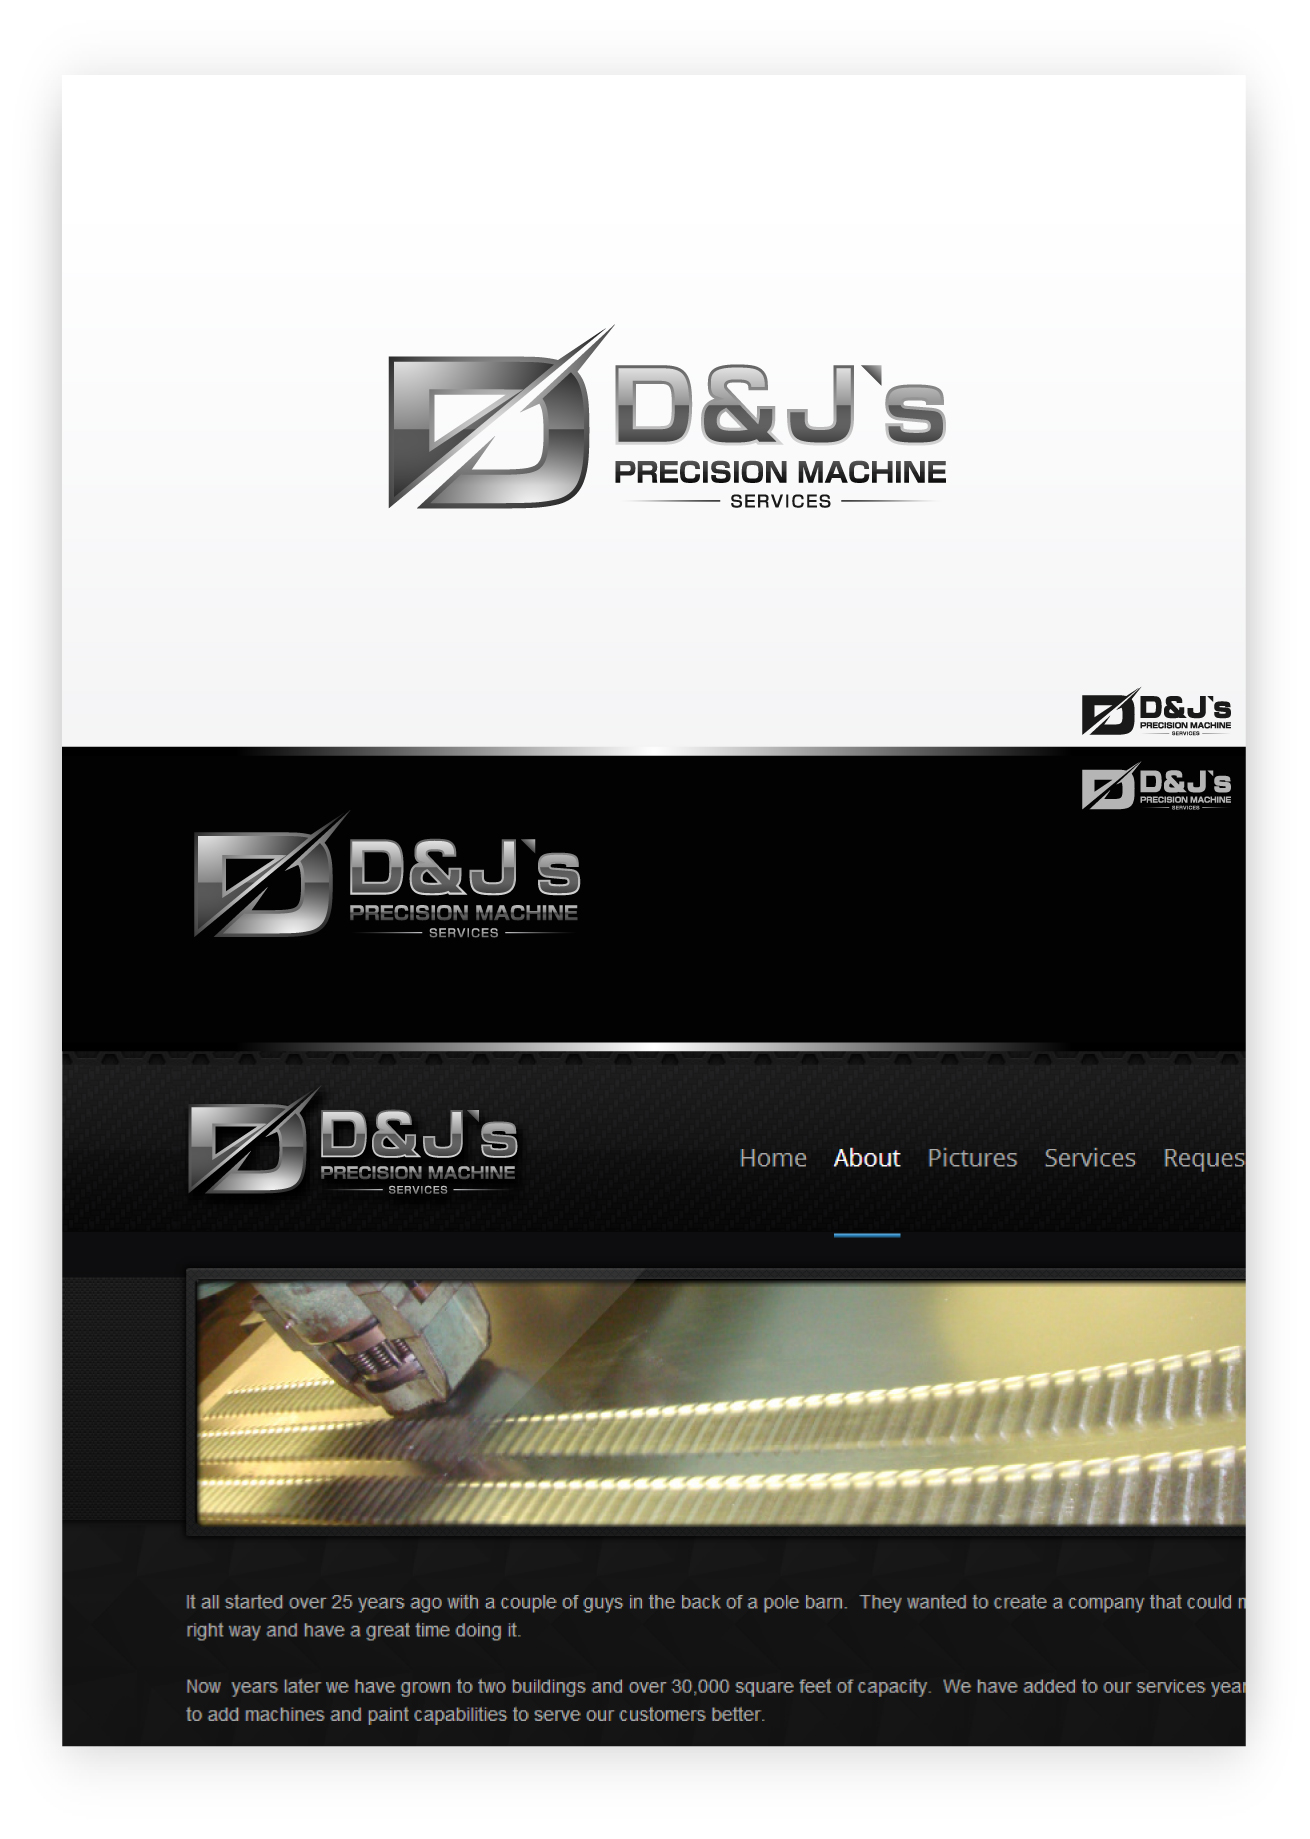 Logo Design by zoiDesign - Entry No. 89 in the Logo Design Contest Creative Logo Design for D & J's Precision Machine Services.